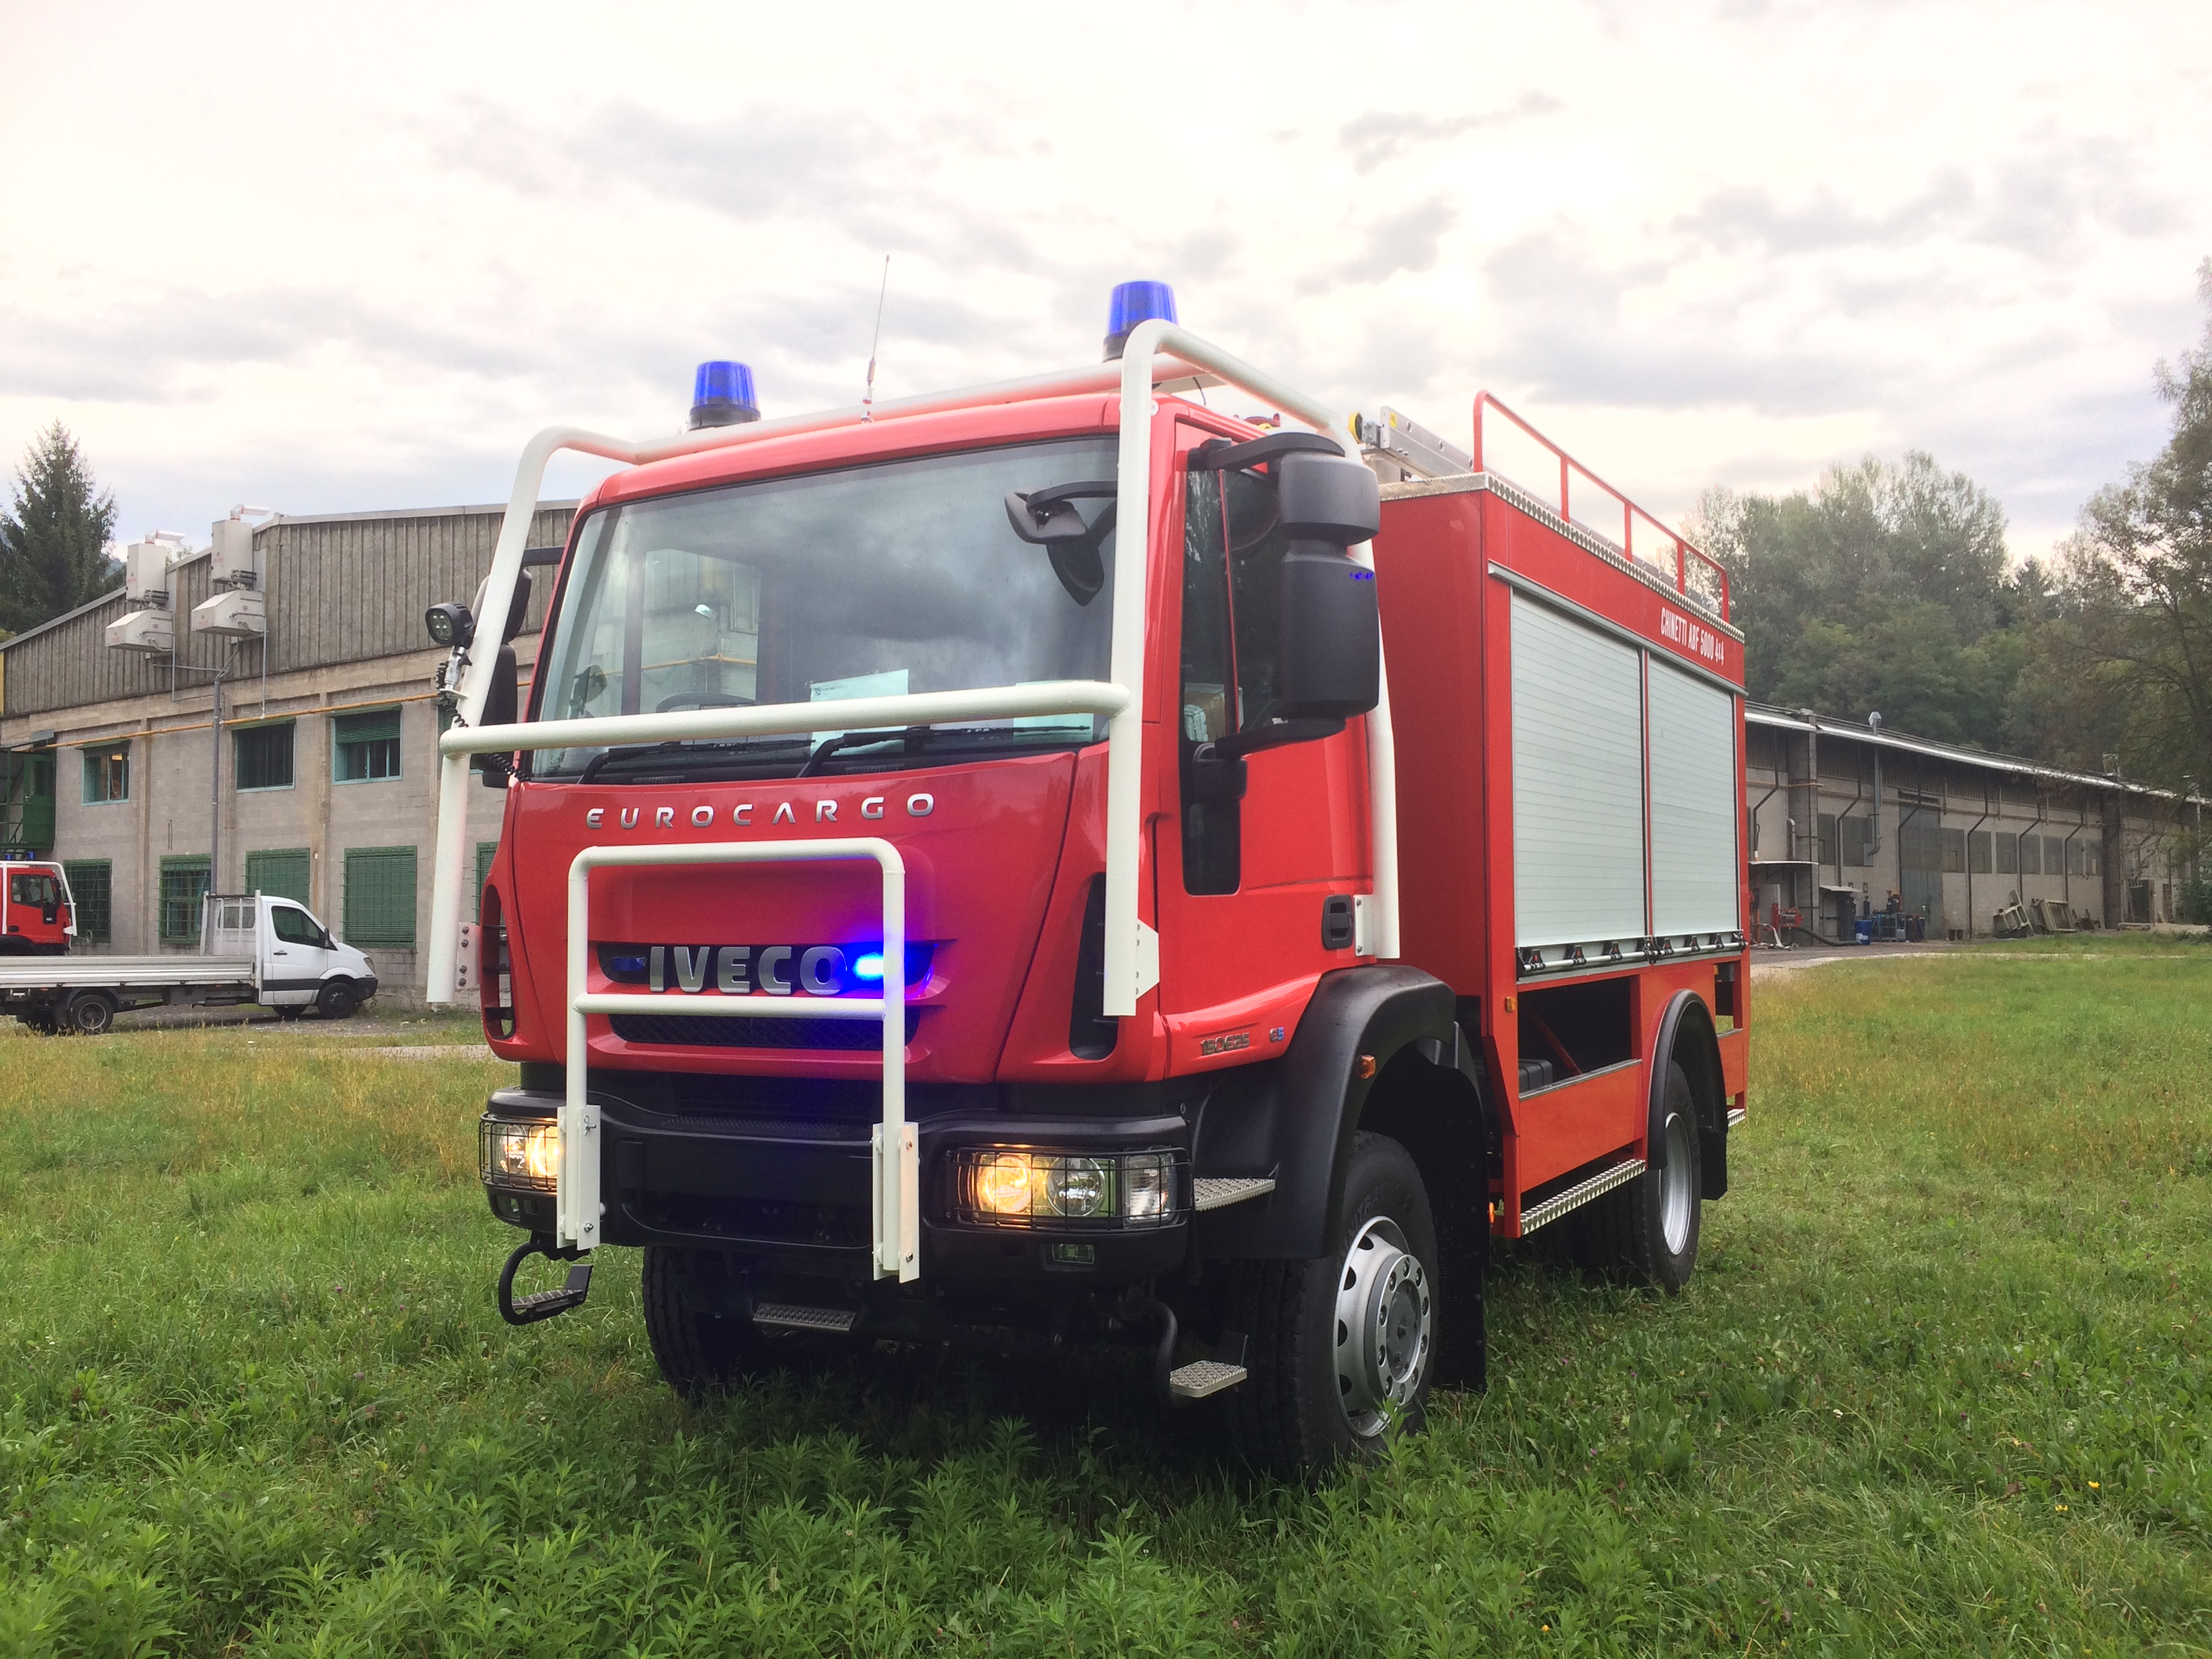 Category: Civil Protection / Forestry fire truck Model: ABF 5000 4x4  Chassis: IVECO EUROCARGO ML150E25W.